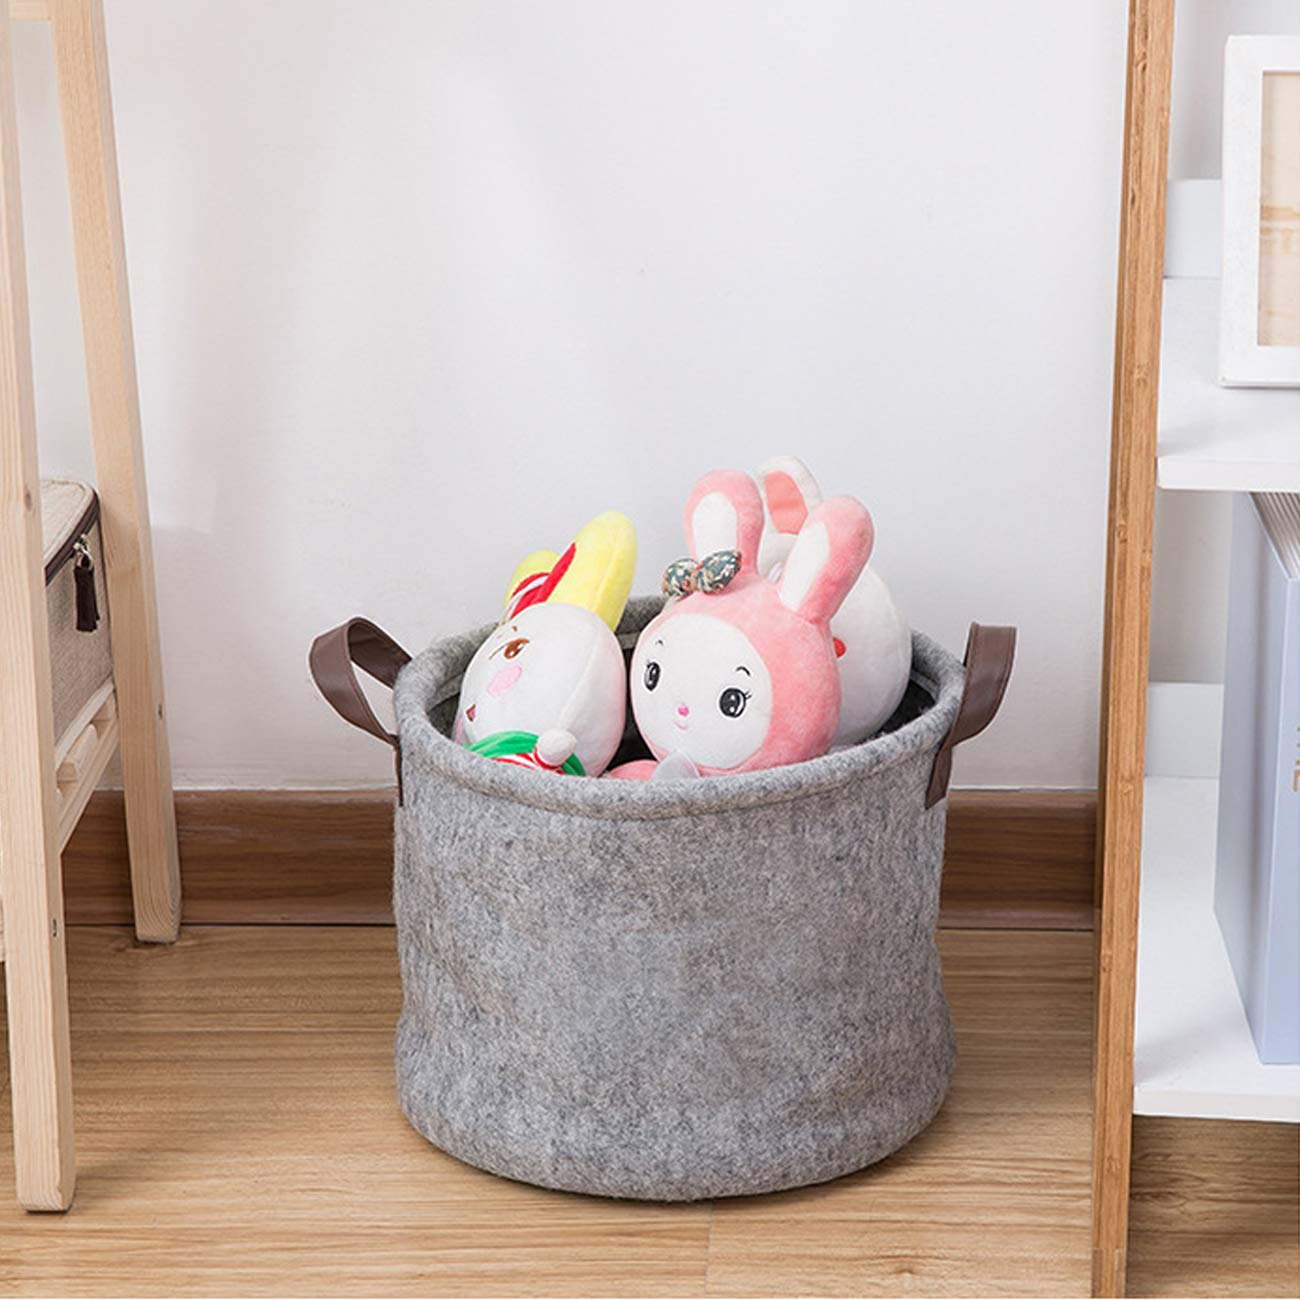 Living Room Laundry Storage,Home D/écor Item to Store Nursery Books Clothes Plant Pet Storage Basket with Leather Handles Set of 2 Felt Storage Bin for Childrens Toys